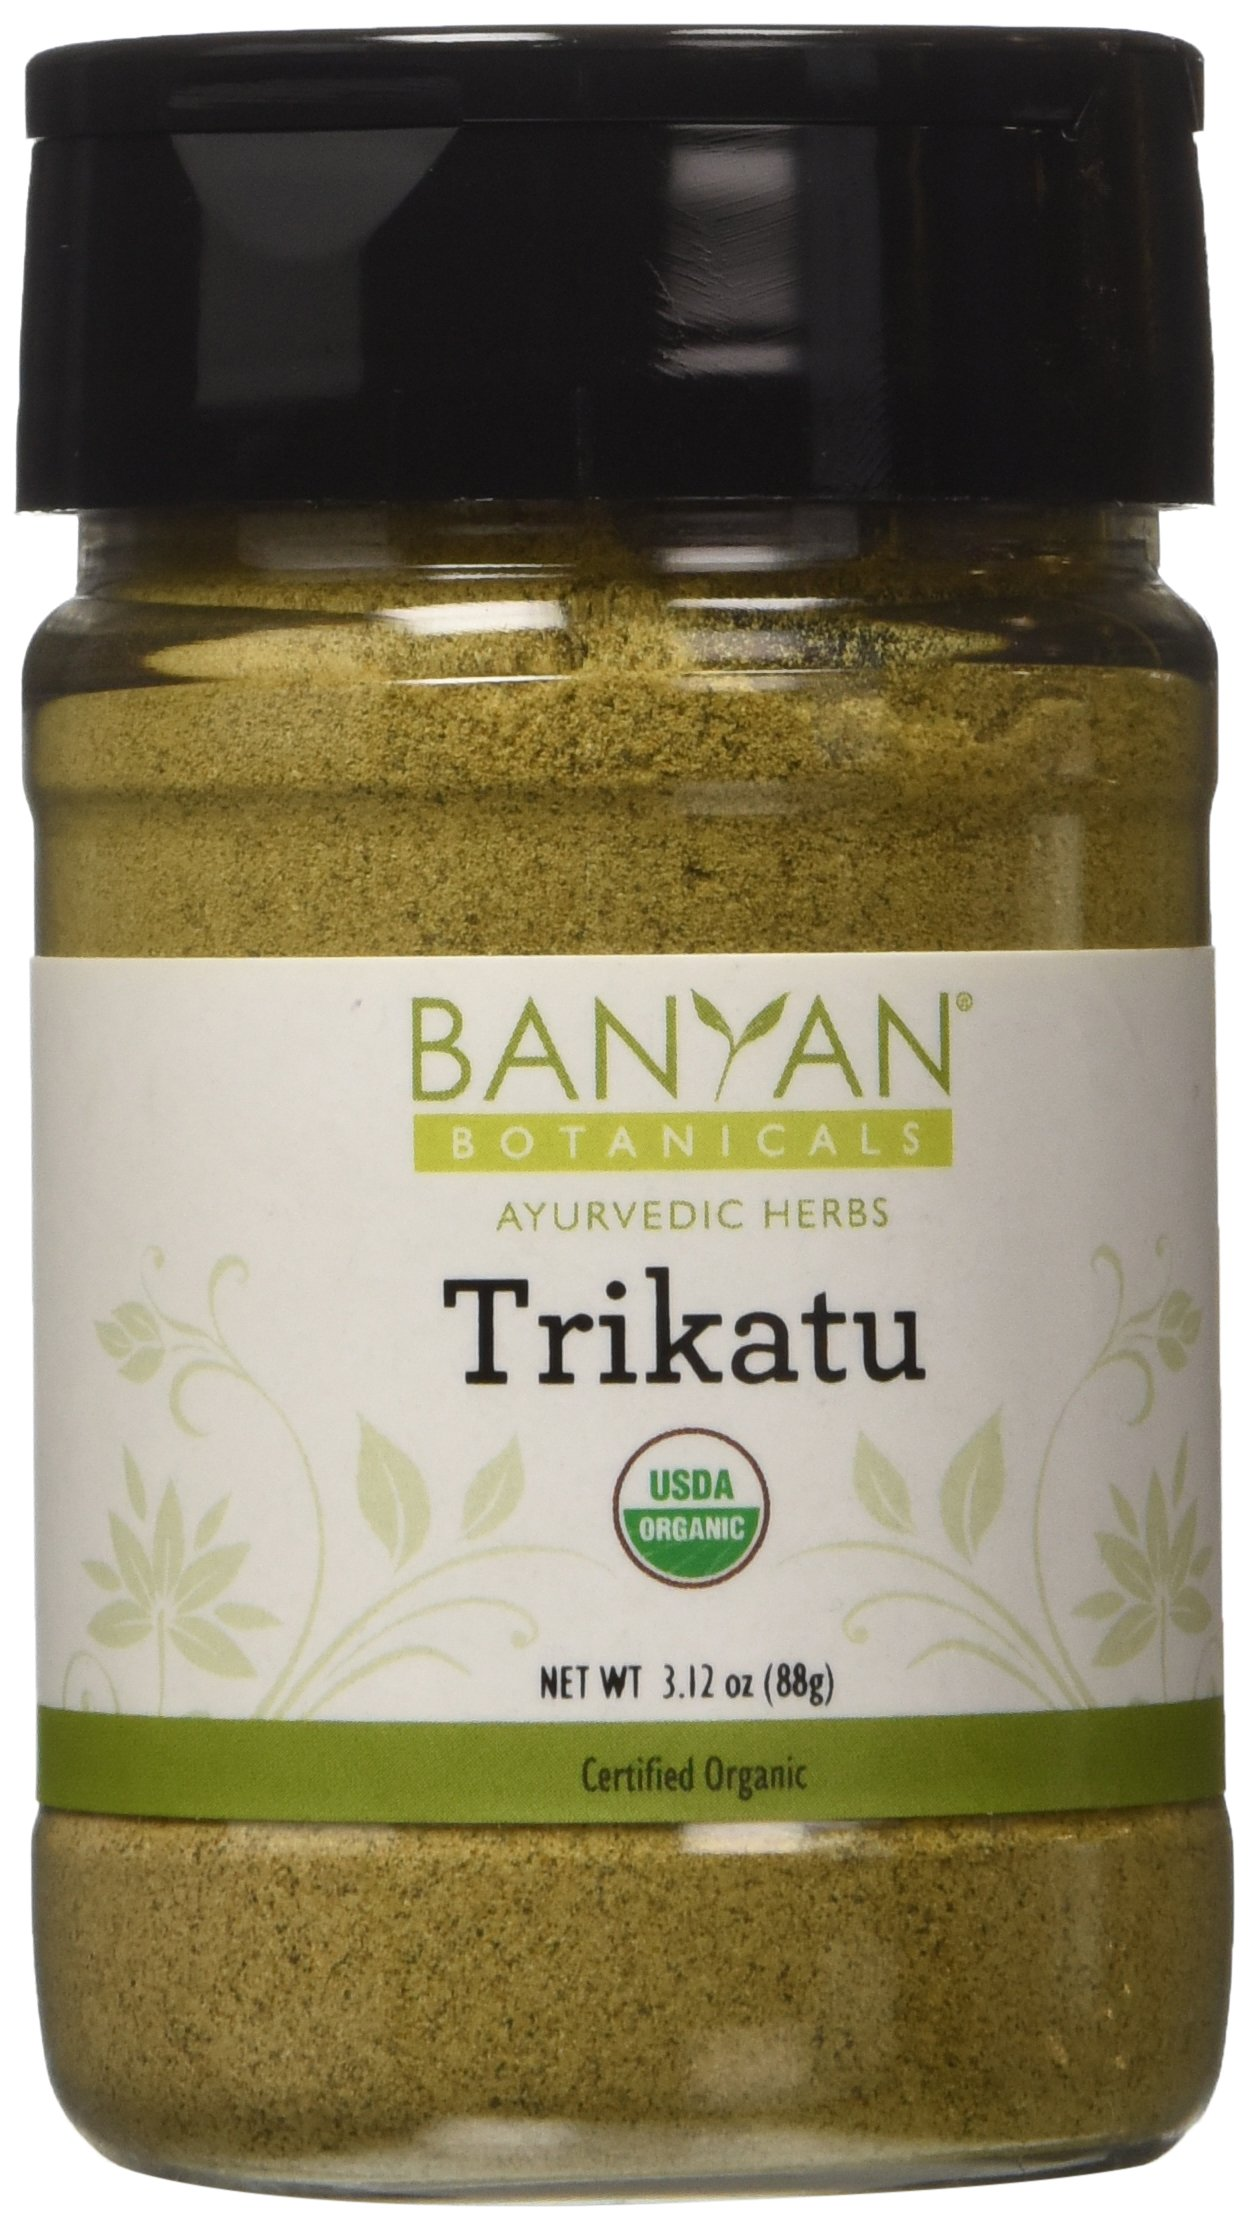 Banyan Botanicals Trikatu Powder - Certified Organic, Spice Jar - Kapha Digest - Digestion formula for kapha*